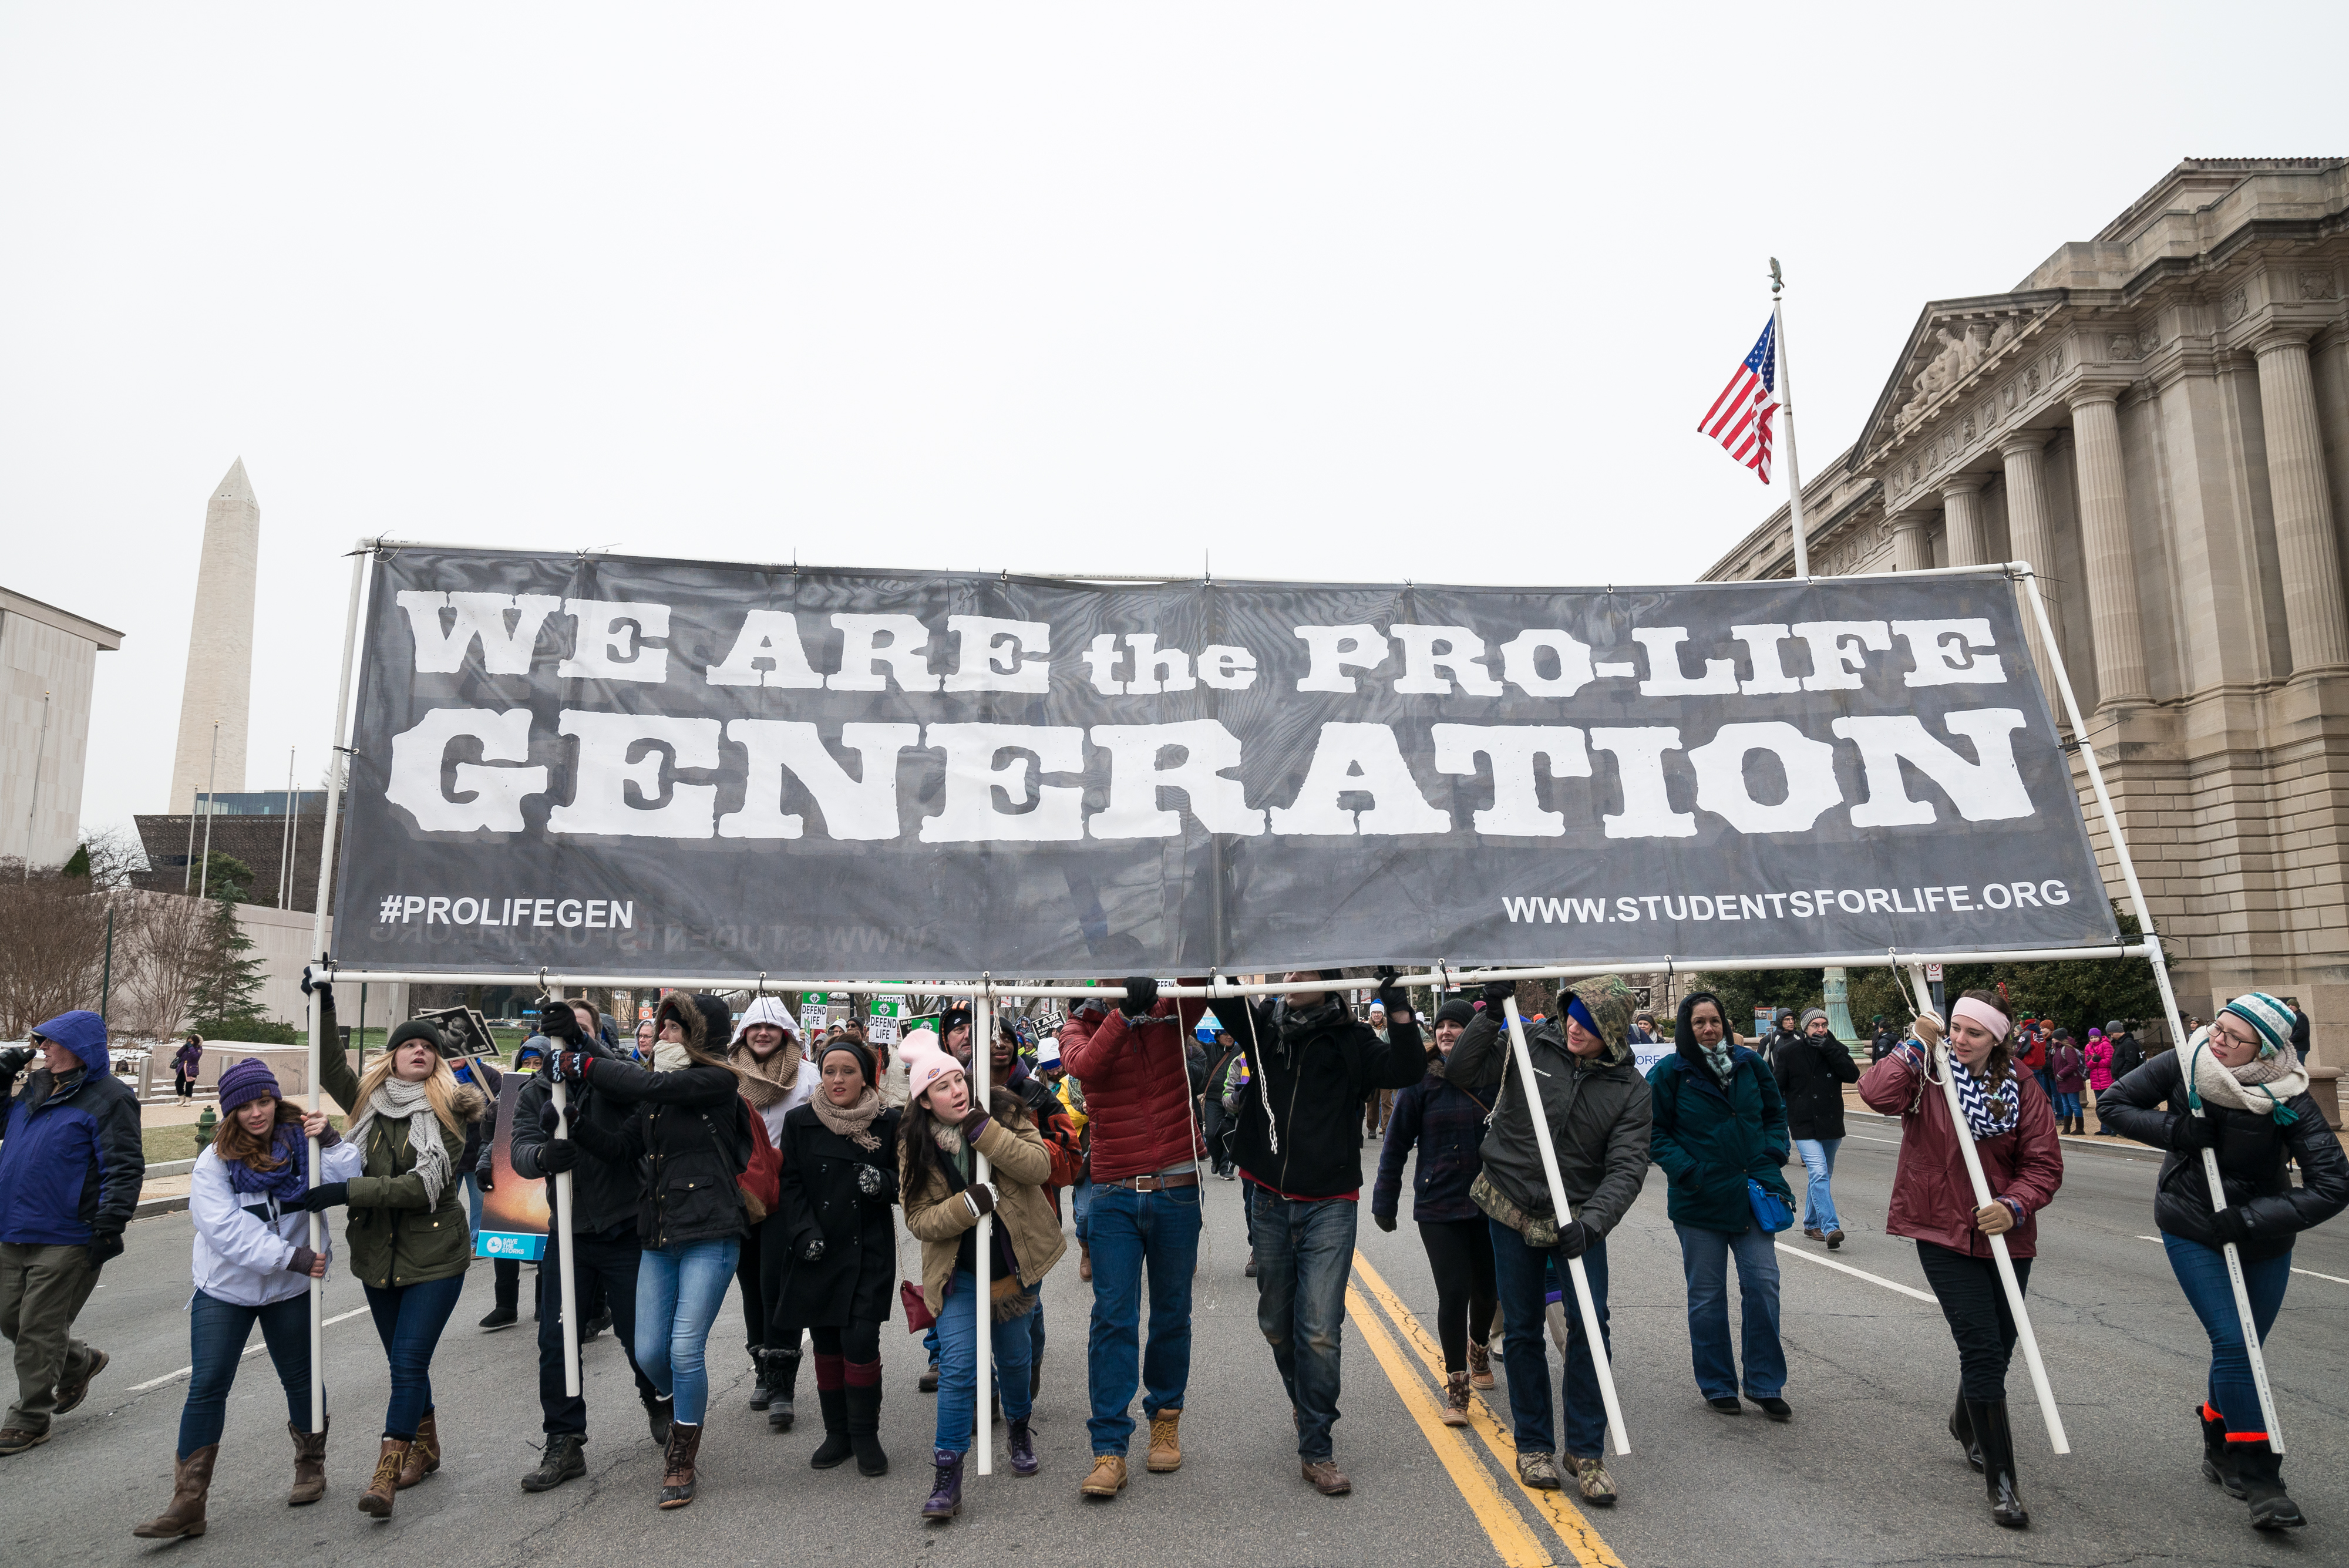 Pro-Life marchers participate in the  March for Life.  Tens of thousands of Pro-Life supporters rallied in Washington, D.C. on the anniversary of the landmark 1973 Supreme Court decision Roe v. Wade, demanding an end to legal abortion in the United States.